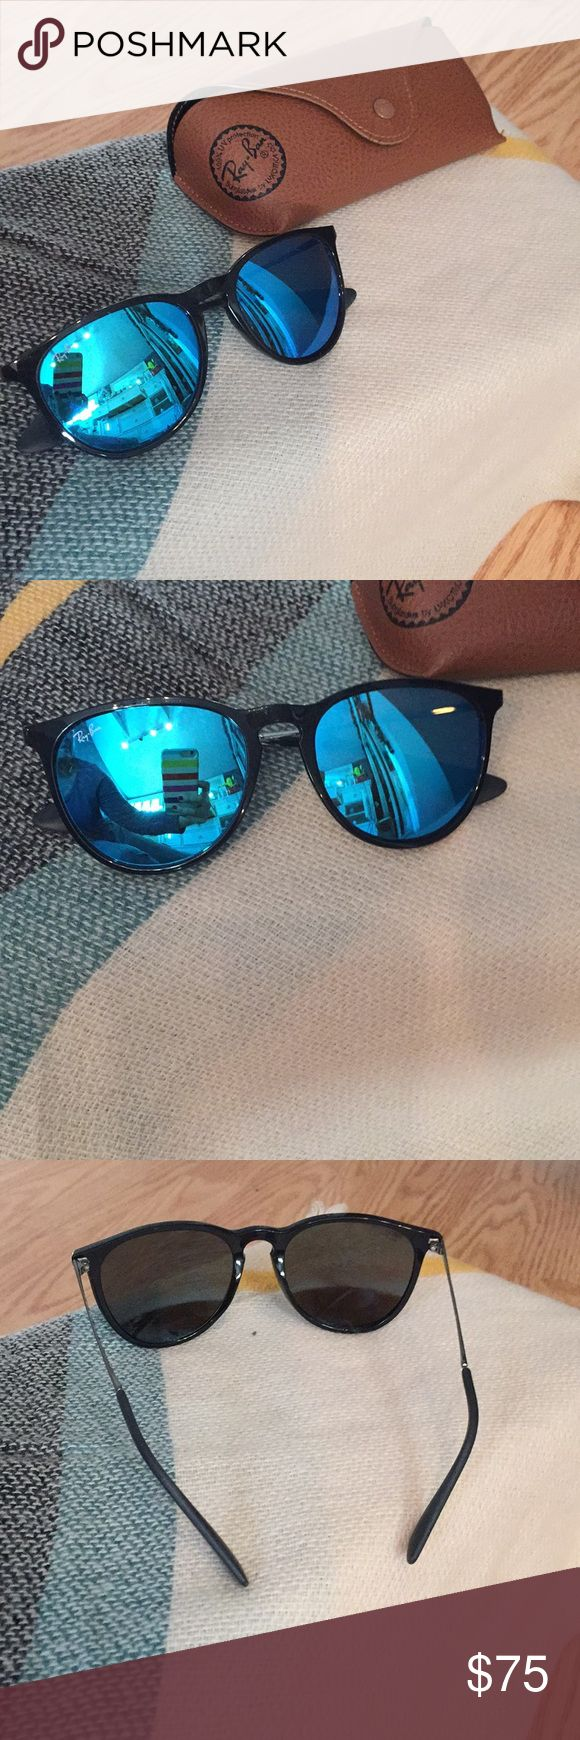 EUC Authentic Ray-Ban Erika sunglasses EUC Authentic Ray-Ban Erika sunglasses with blue mirrored lens. Black frame and black rubber ear pieces. Comes with authentic Ray ban brown case. Worn a few times- almost new condition! Ray-Ban Accessories Sunglasses